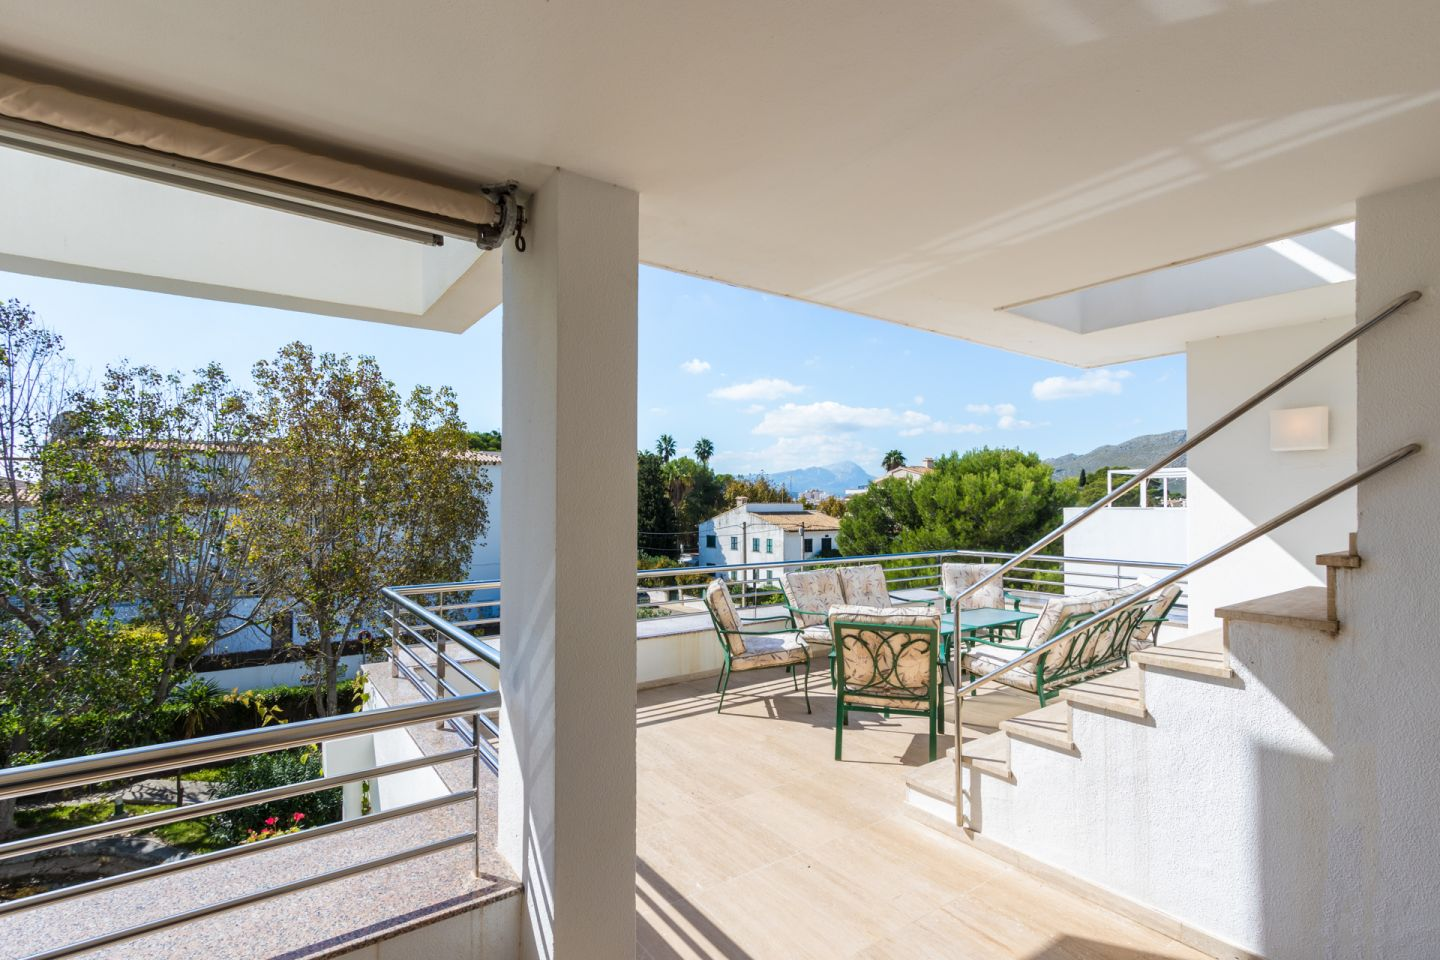 5 Bed Penthouse for sale in PUERTO POLLENSA 2